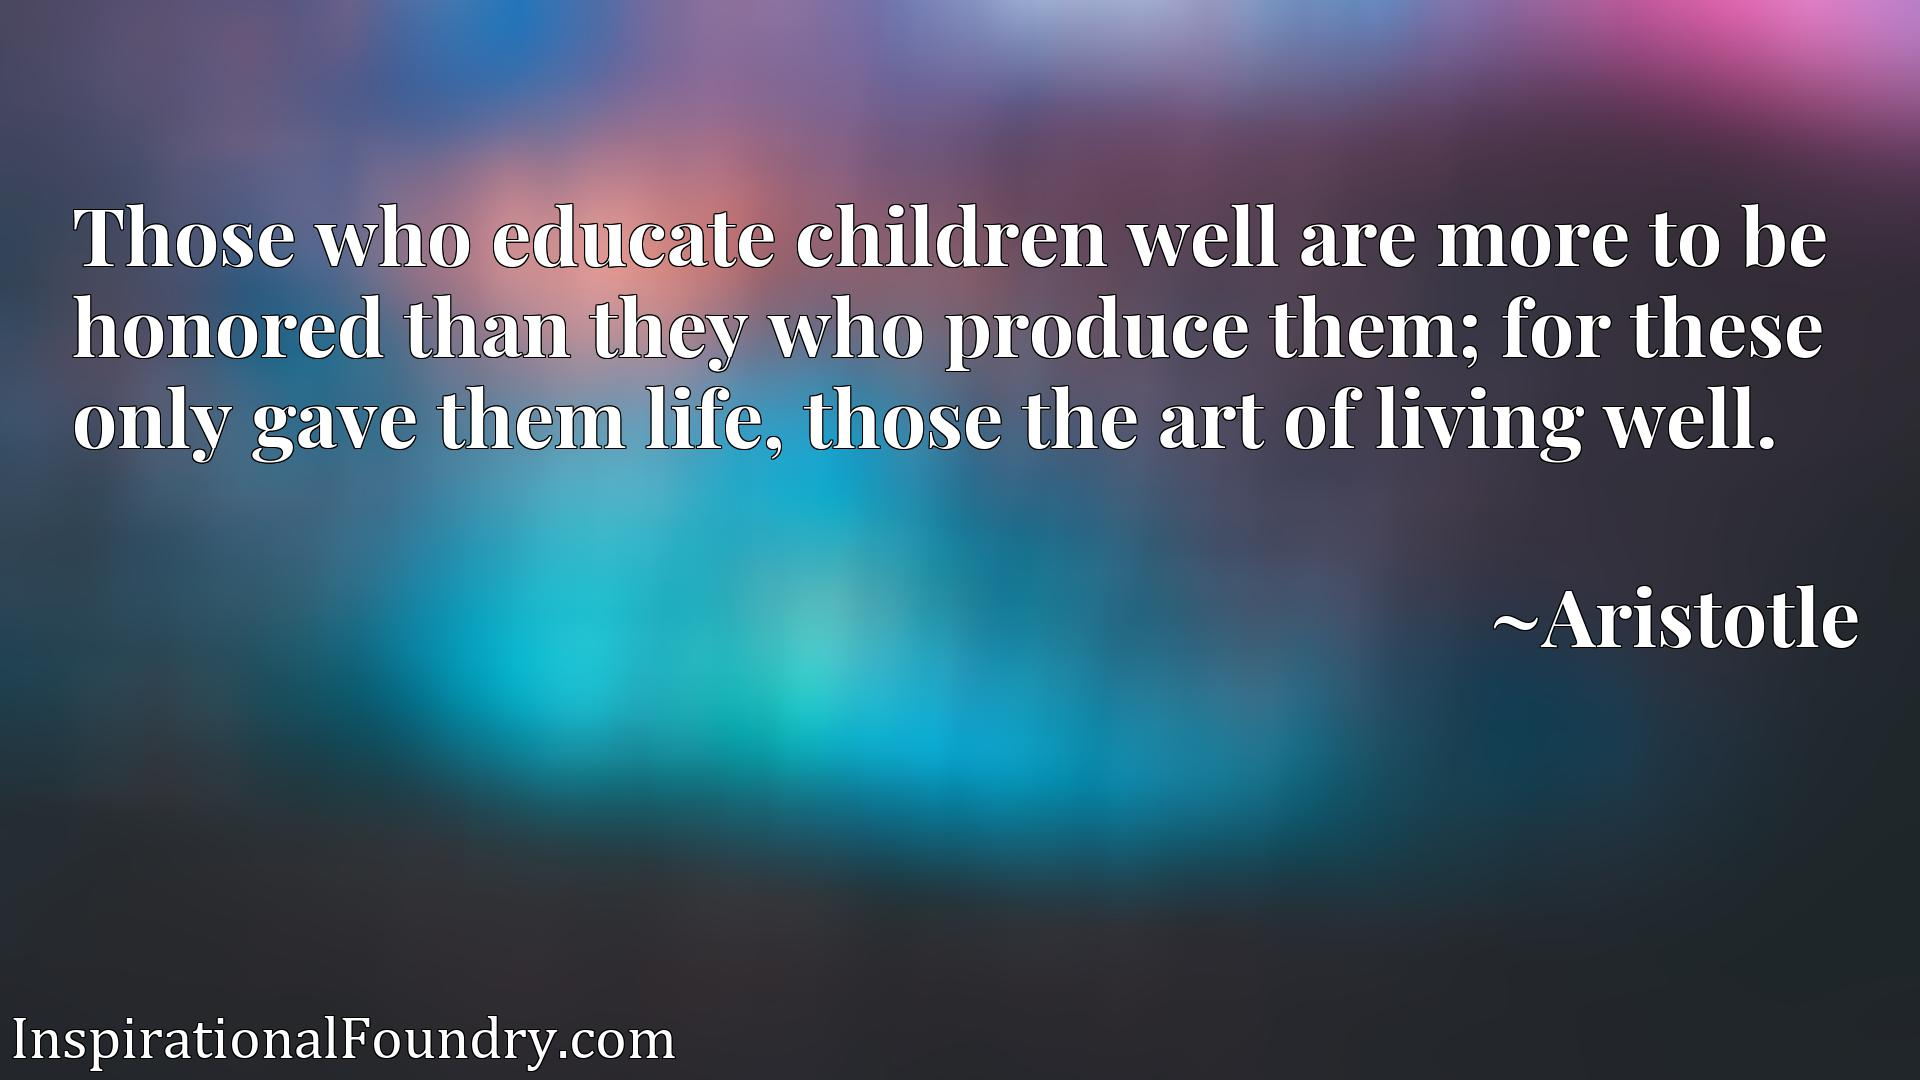 Those who educate children well are more to be honored than they who produce them; for these only gave them life, those the art of living well.